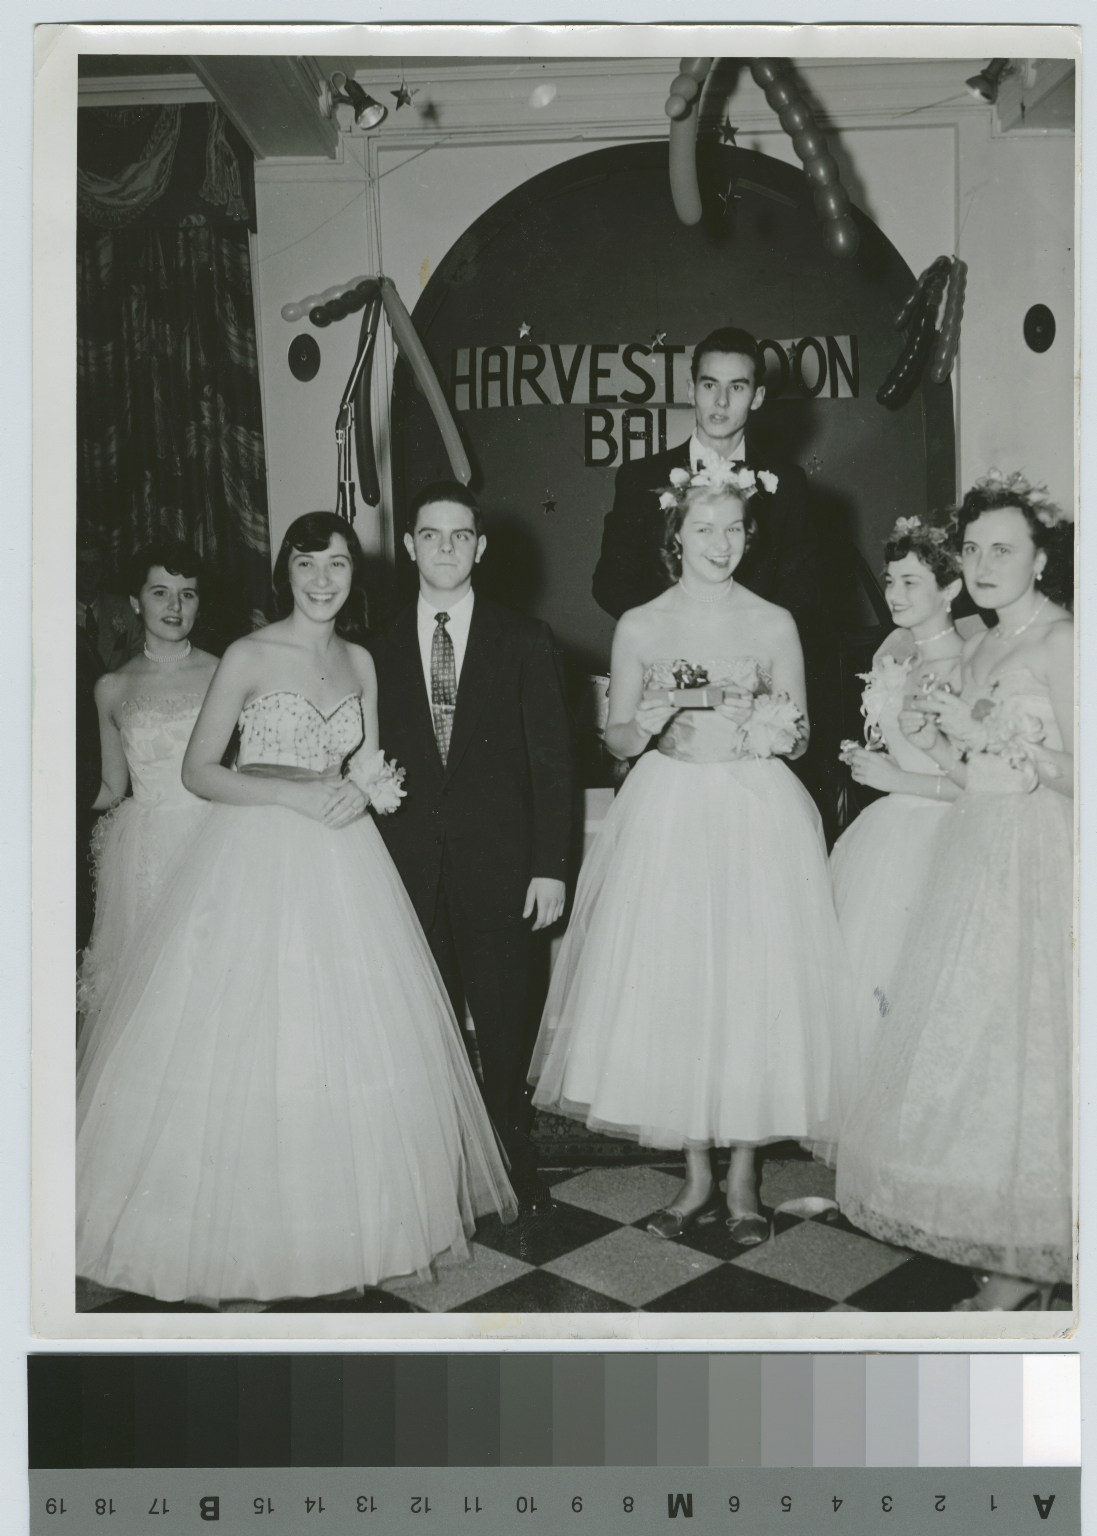 Unidentified students at Harvest Moon Ball, Rochester Institute of Technology